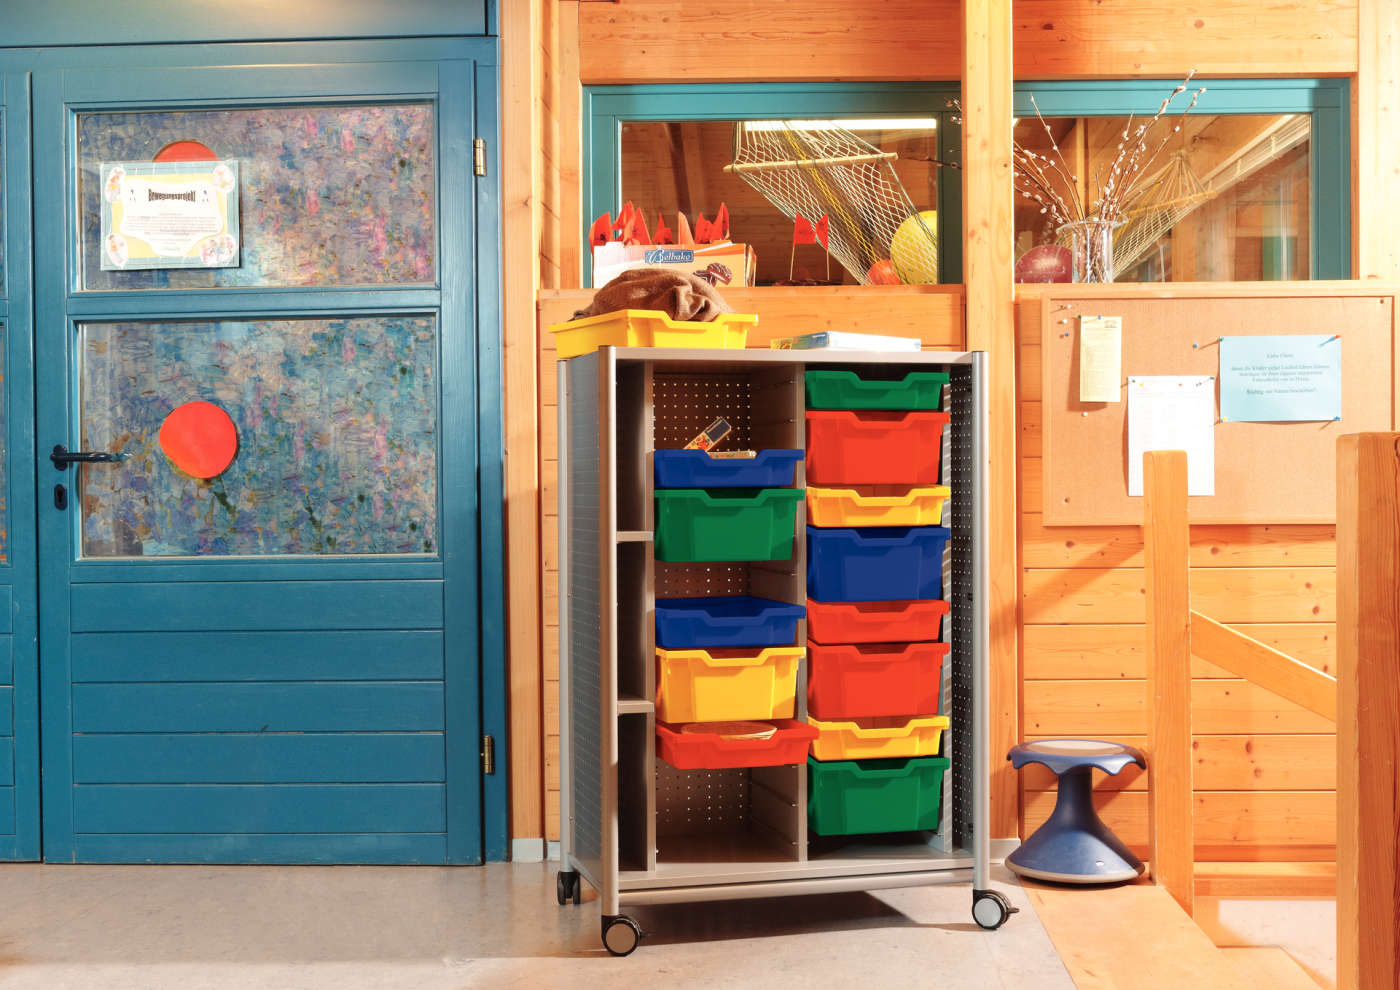 module furniture. Here Everything Goes In The Box: This Storage Module Creates Orderliness. Even All Those Little Bits That Are Part Of Different Play Activities Stowed Furniture